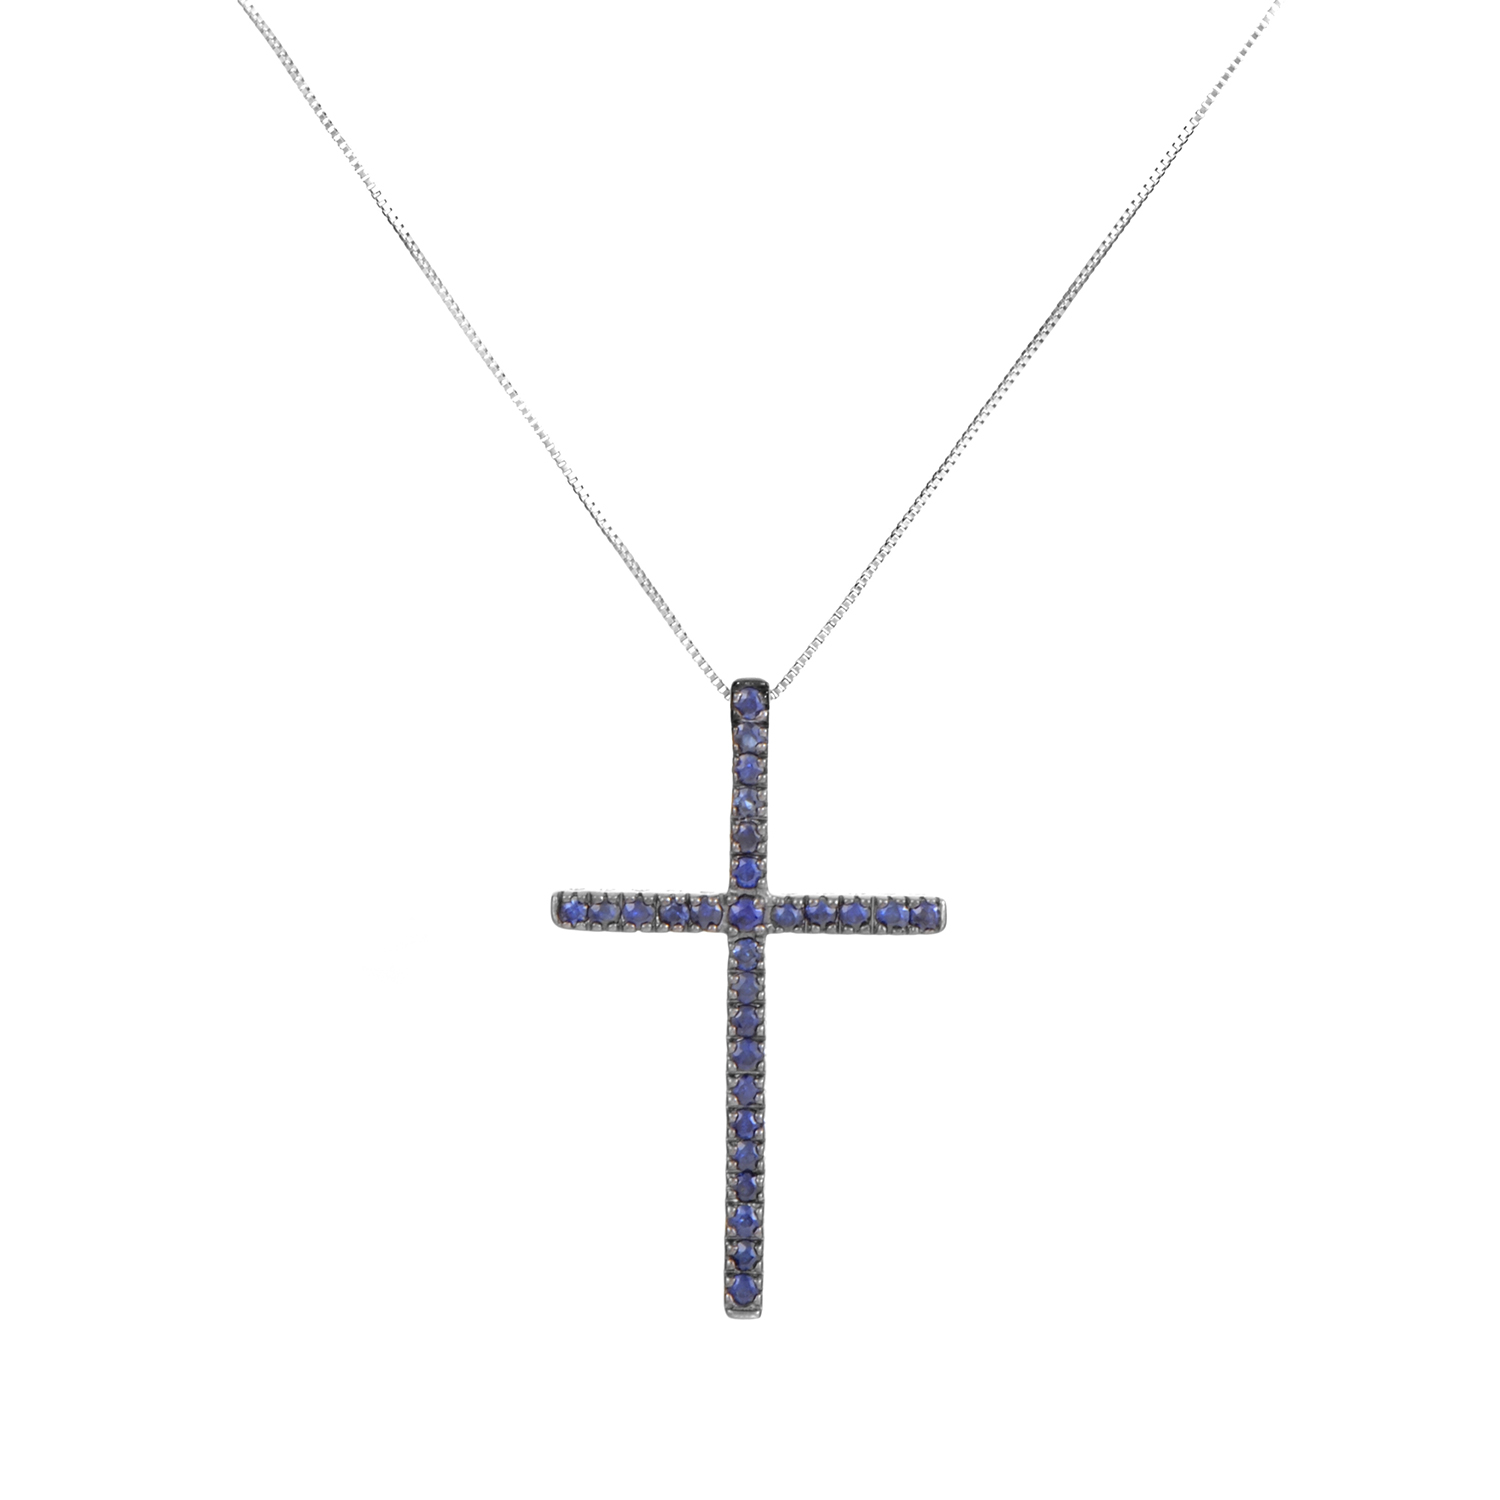 14K White Gold Sapphire Cross Pendant Necklace PC4-10027WSA